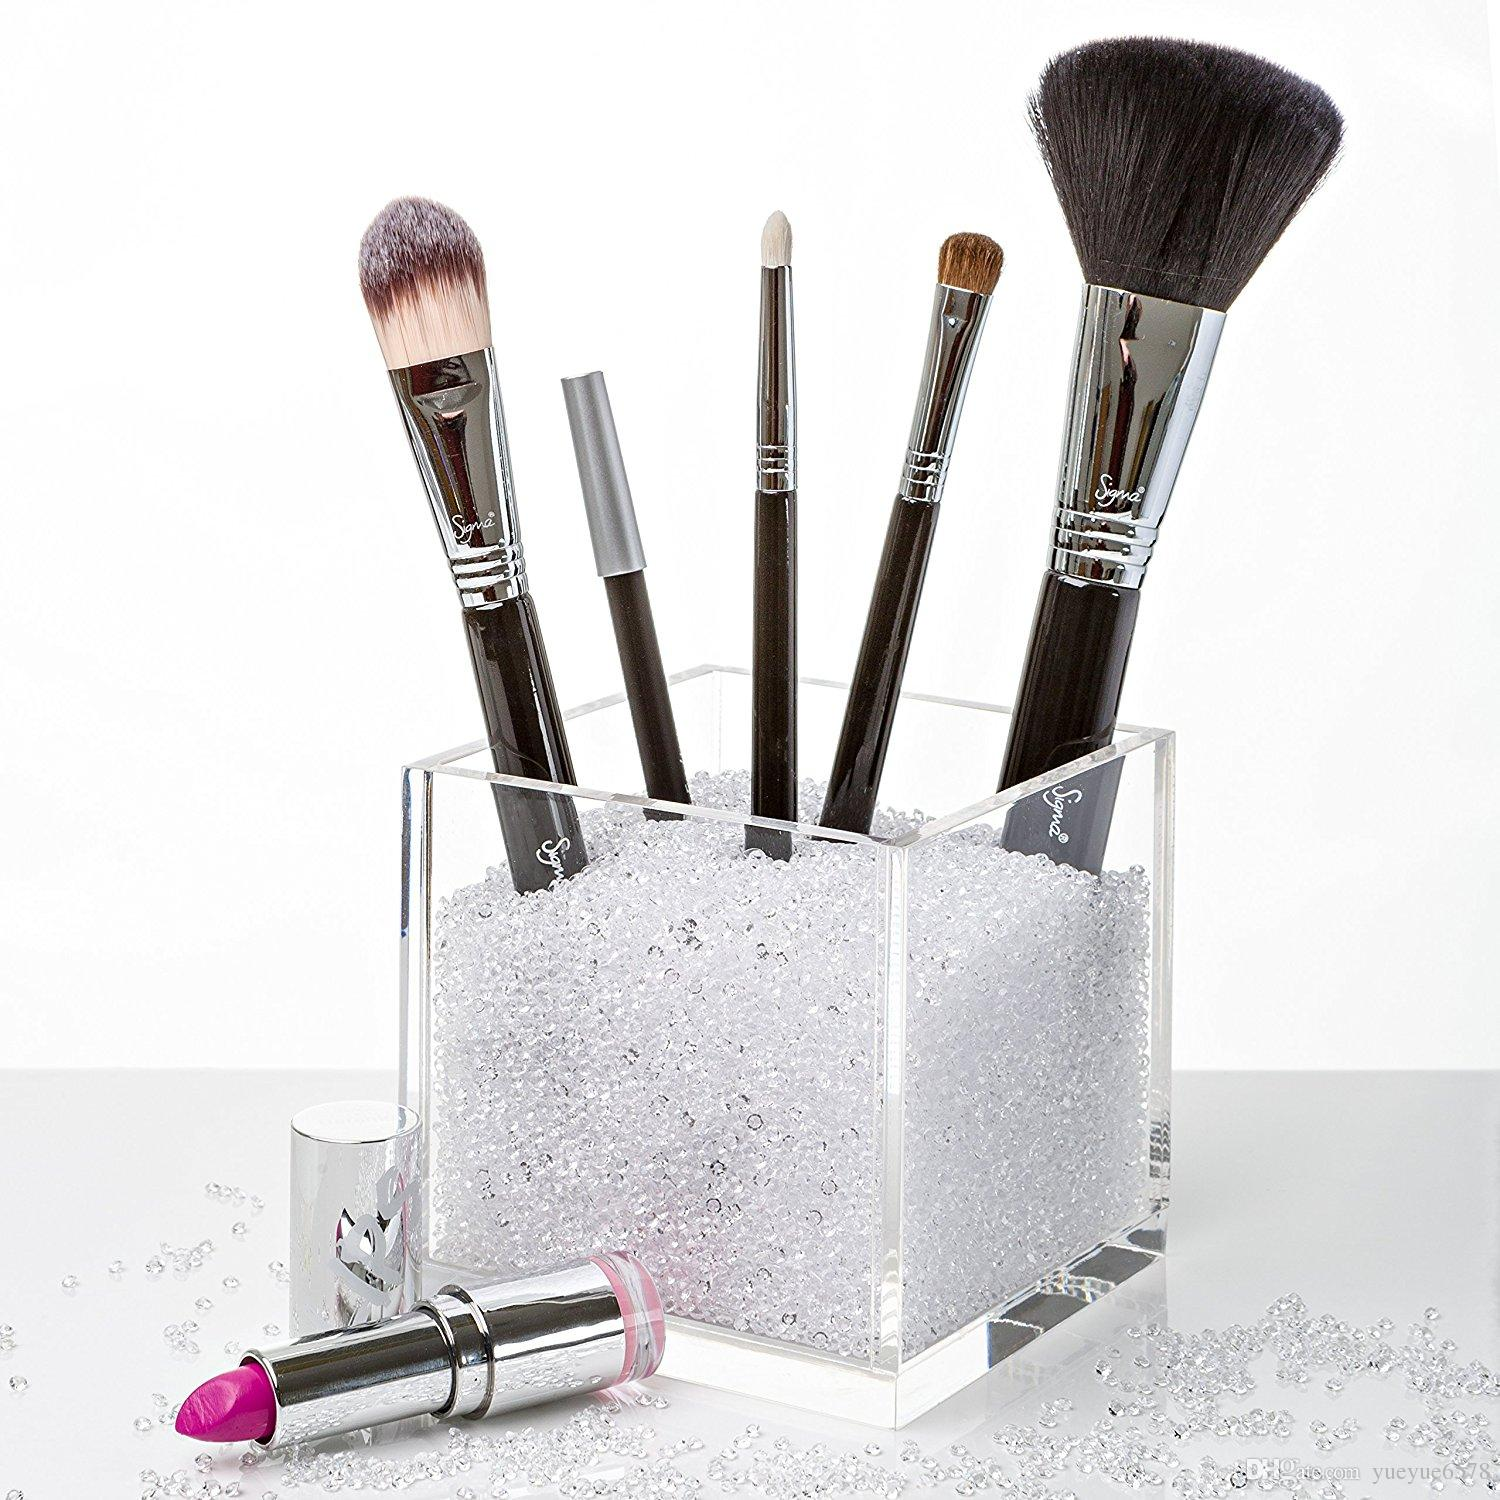 brush holder beads. 2018 acrylic square make up box ,plexiglass makeup brush holder countertop cosmetic organizer with crystal stones beads from yueyue6578, $23.12 | dhgate.com